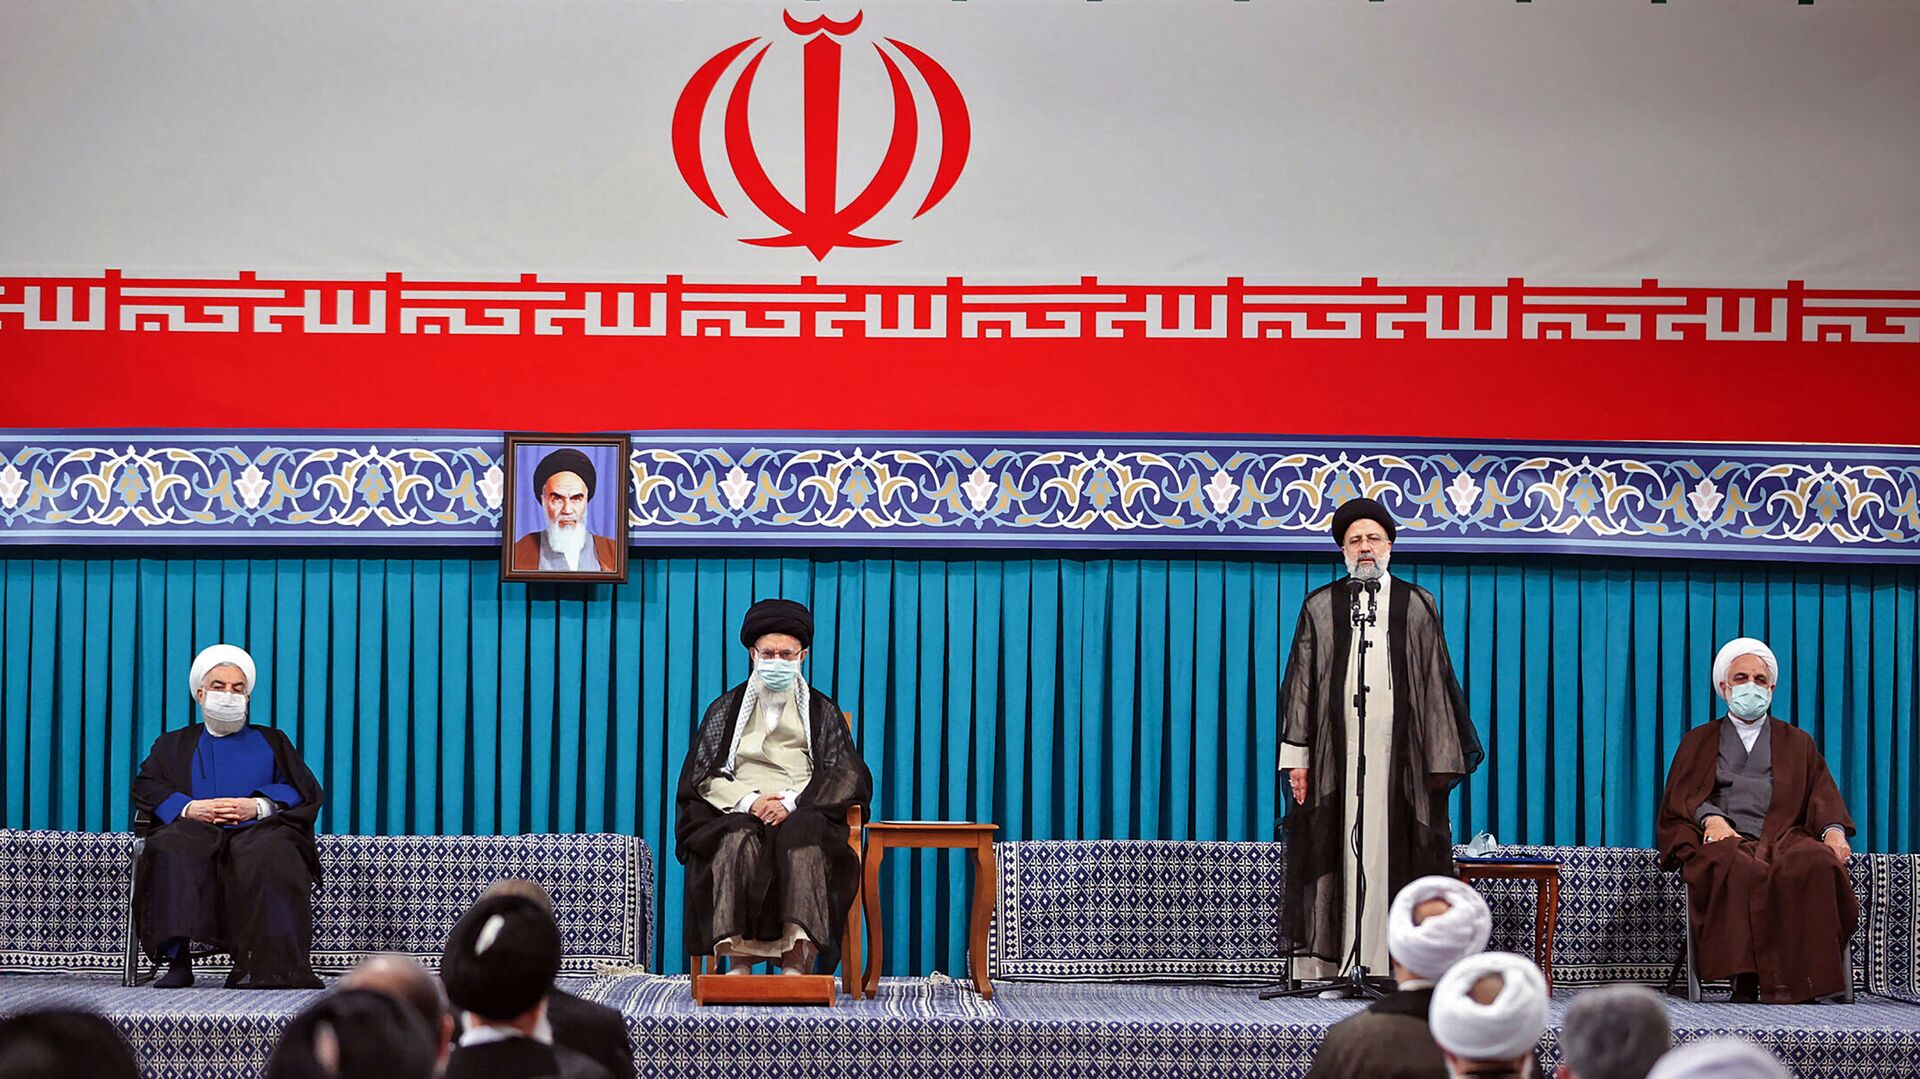 A handout picture provided by the office of Iran's Supreme Leader Ayatollah Ali Khamenei on August, 3 2021 shows him (C L) flanked by outgoing president Hassan Rouhani (L) during the inauguration ceremony for Ebrahim Raisi (C R) in the presence of the head of judiciary authority Gholamhossein Mohseni-Ejei (R) in Khamenei's office in the capital Tehran. - Sputnik International, 1920, 03.08.2021